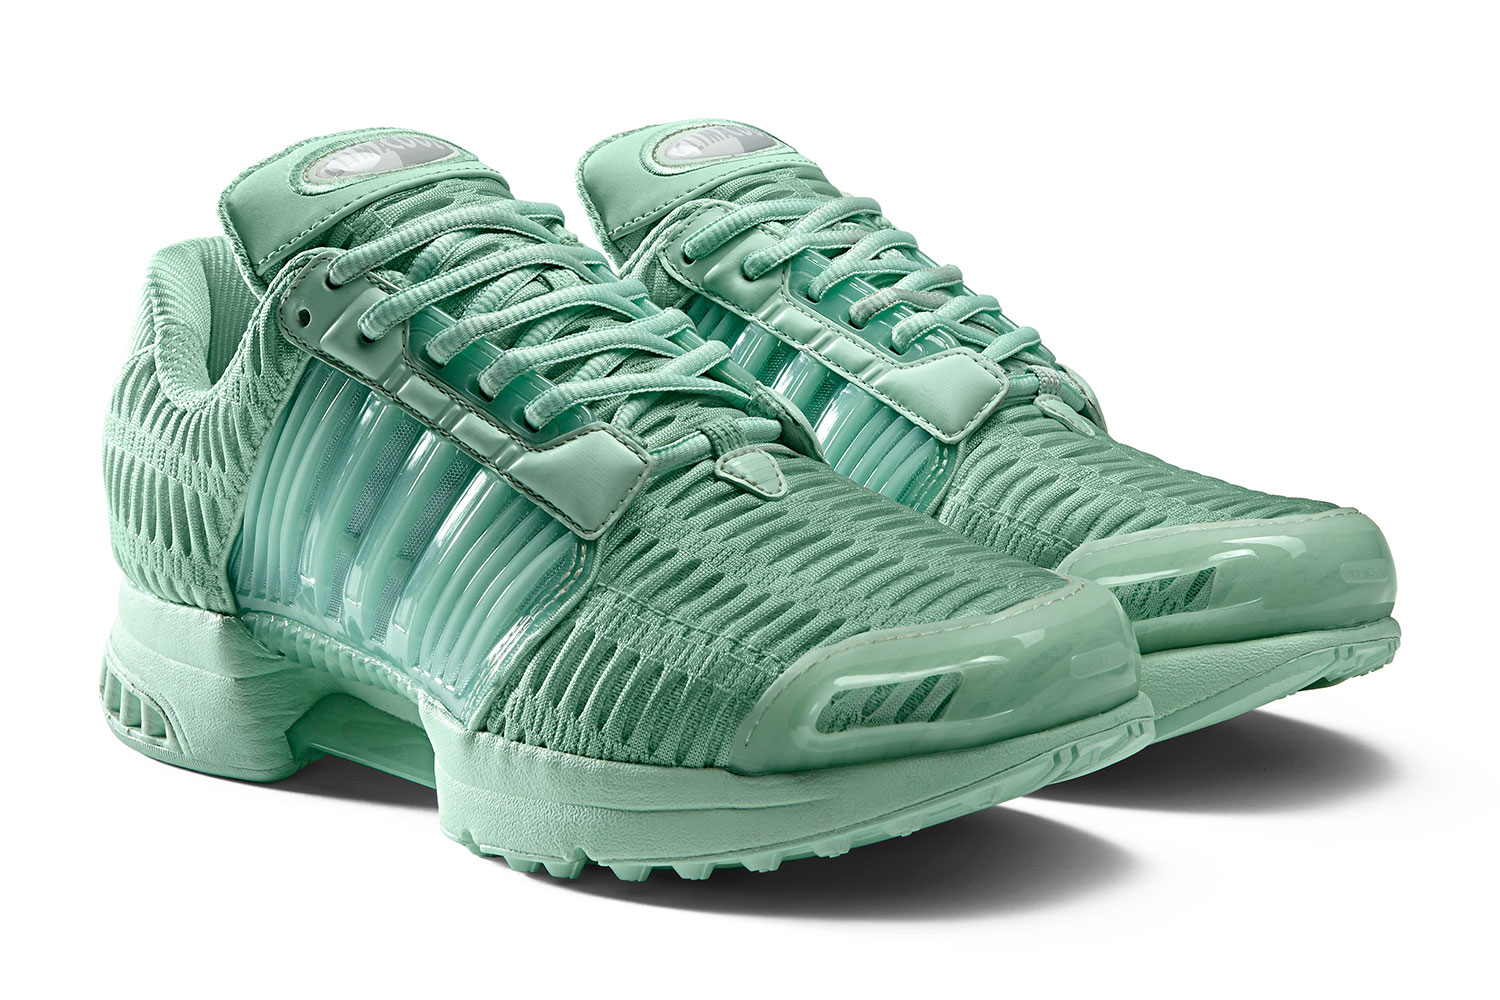 adidas release tonal climacool 1's for Spring / Summer 2016